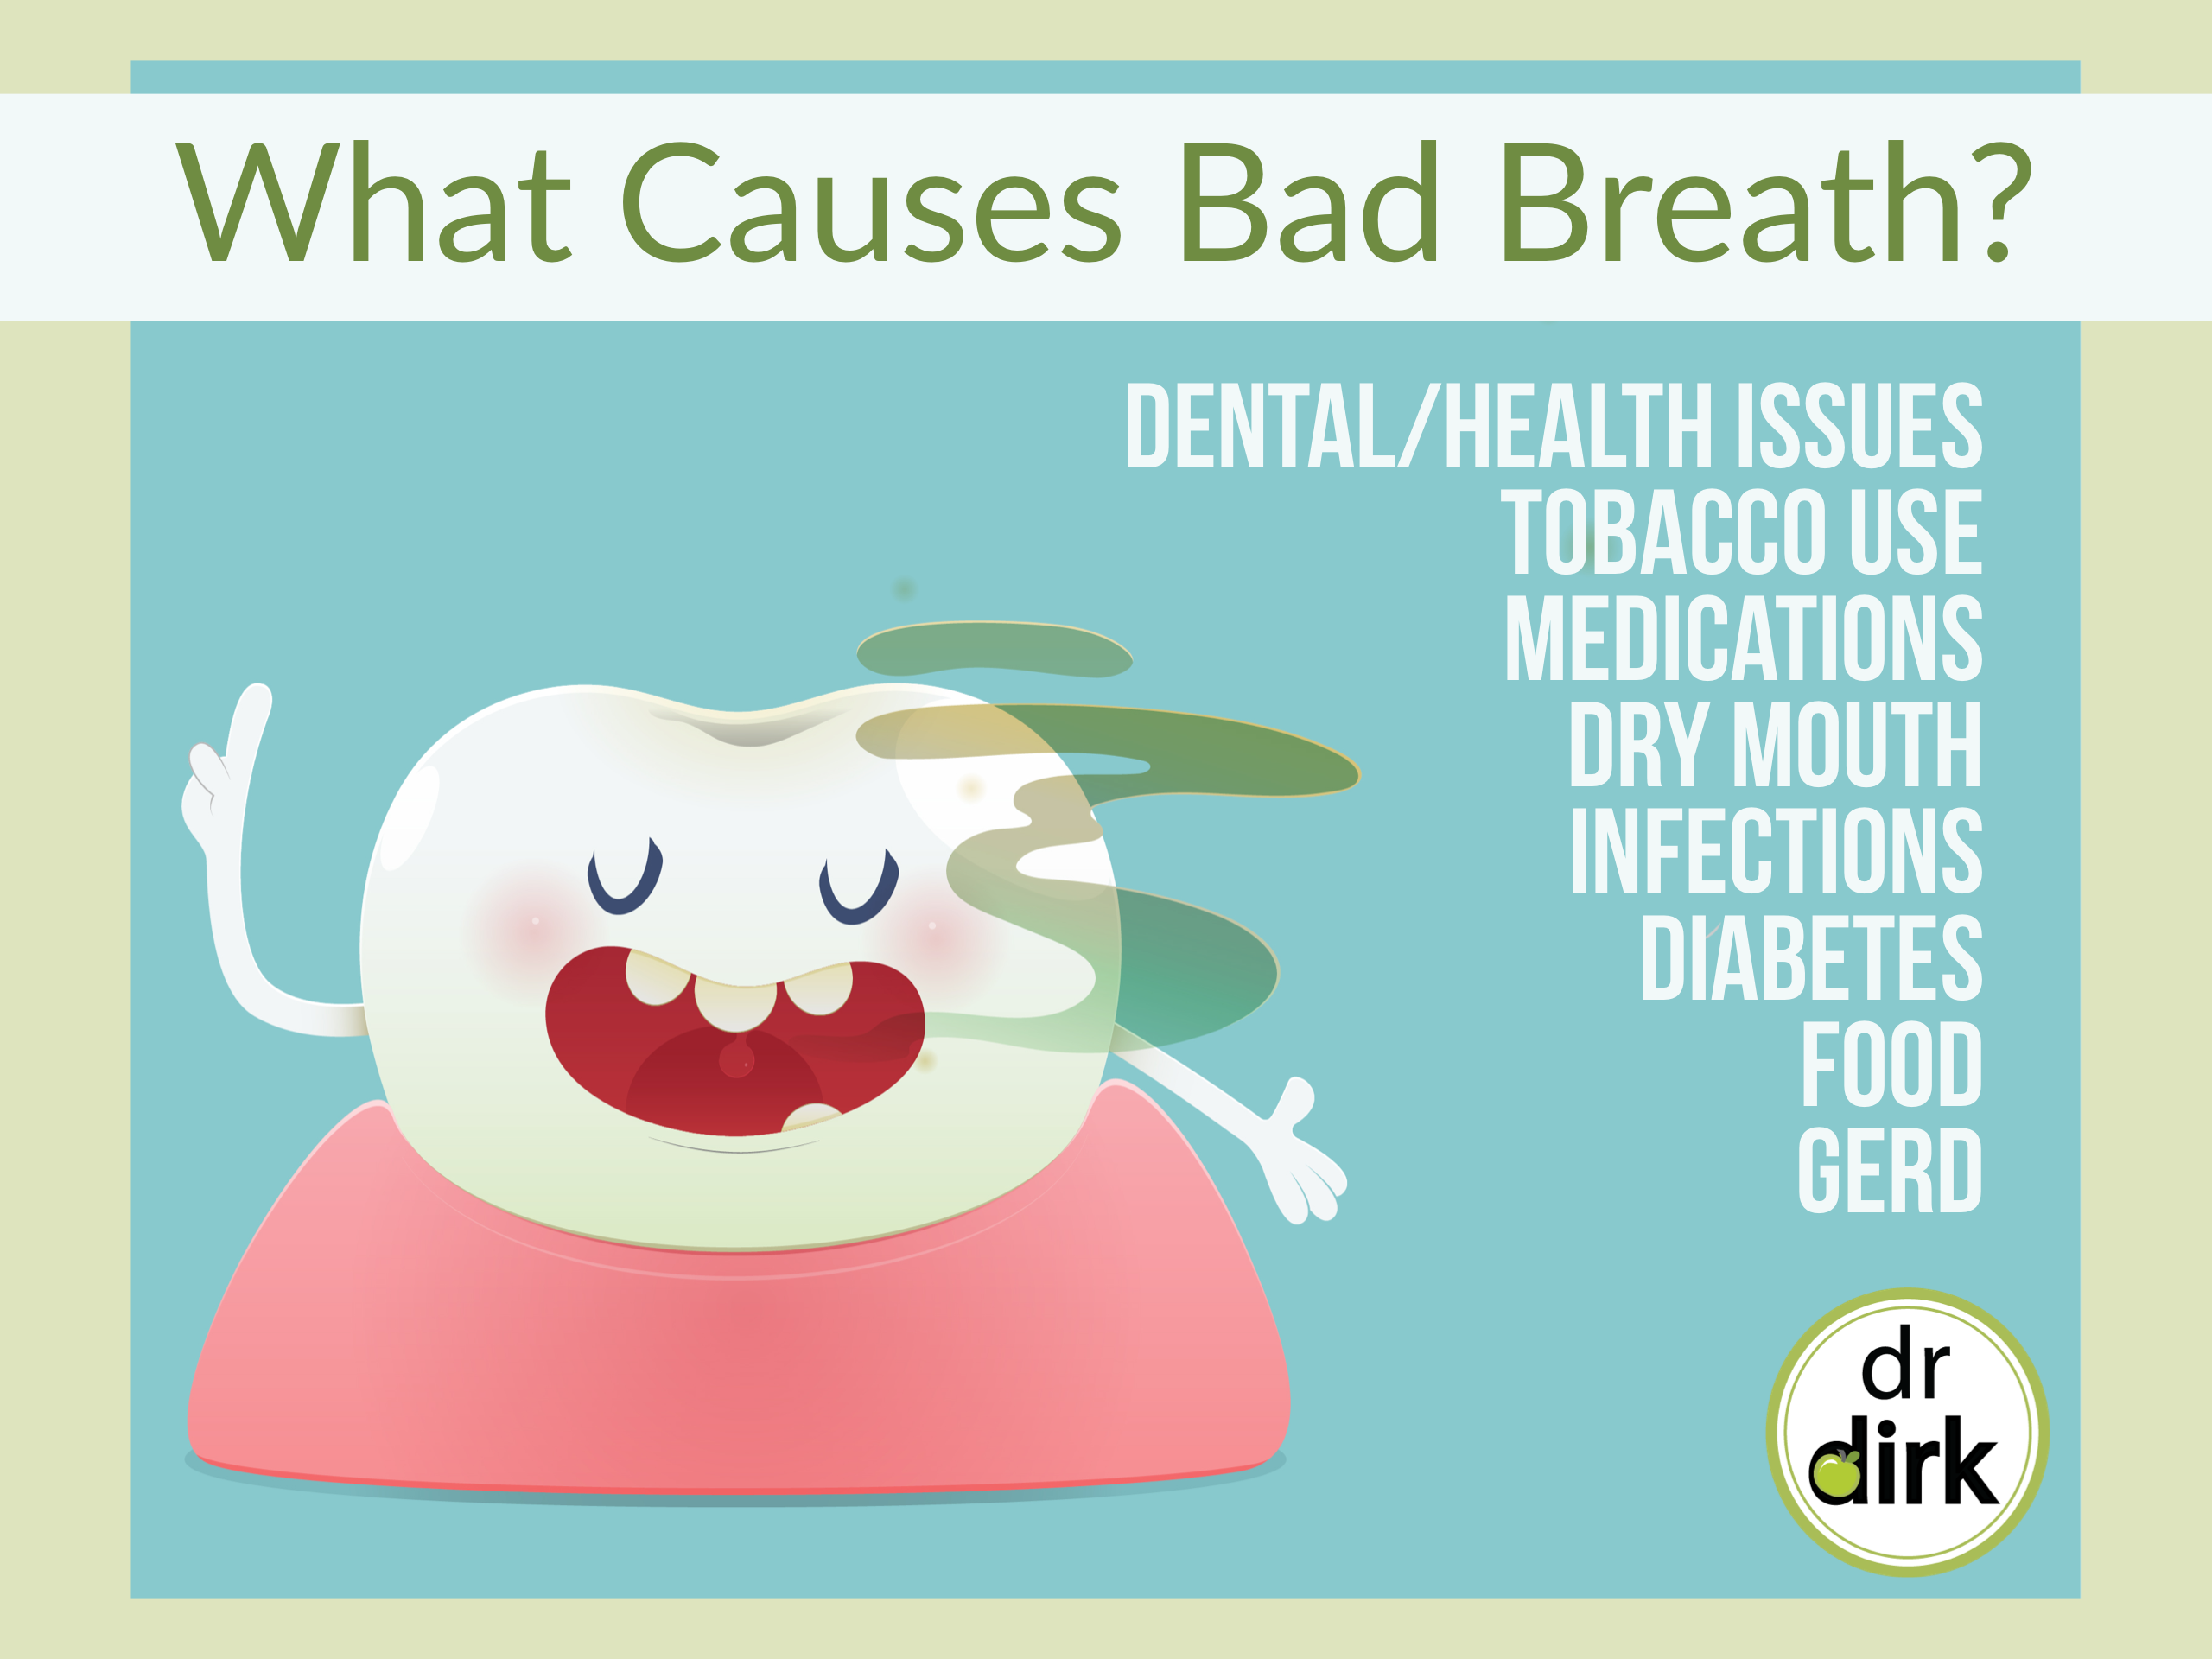 How Can My Calgary Dentist Help With Chronic Bad Breath?